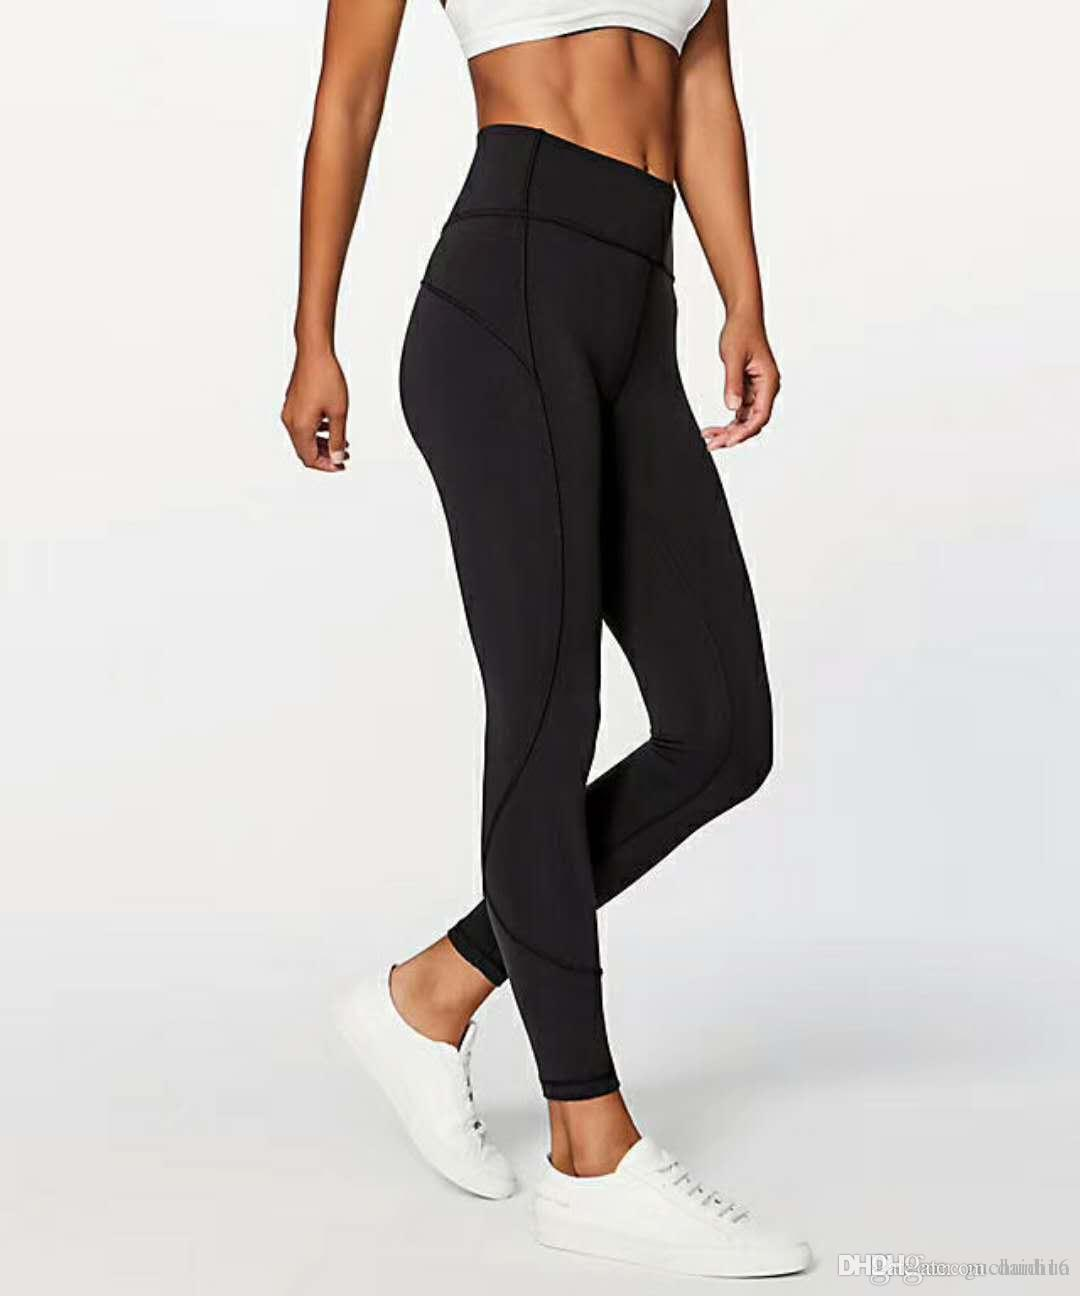 Fitness Wear Girls Brand Running Leggings Athletic Trousers Women Yoga Outfits Ladies Sports Full Leggings Ladies Pants Exercise